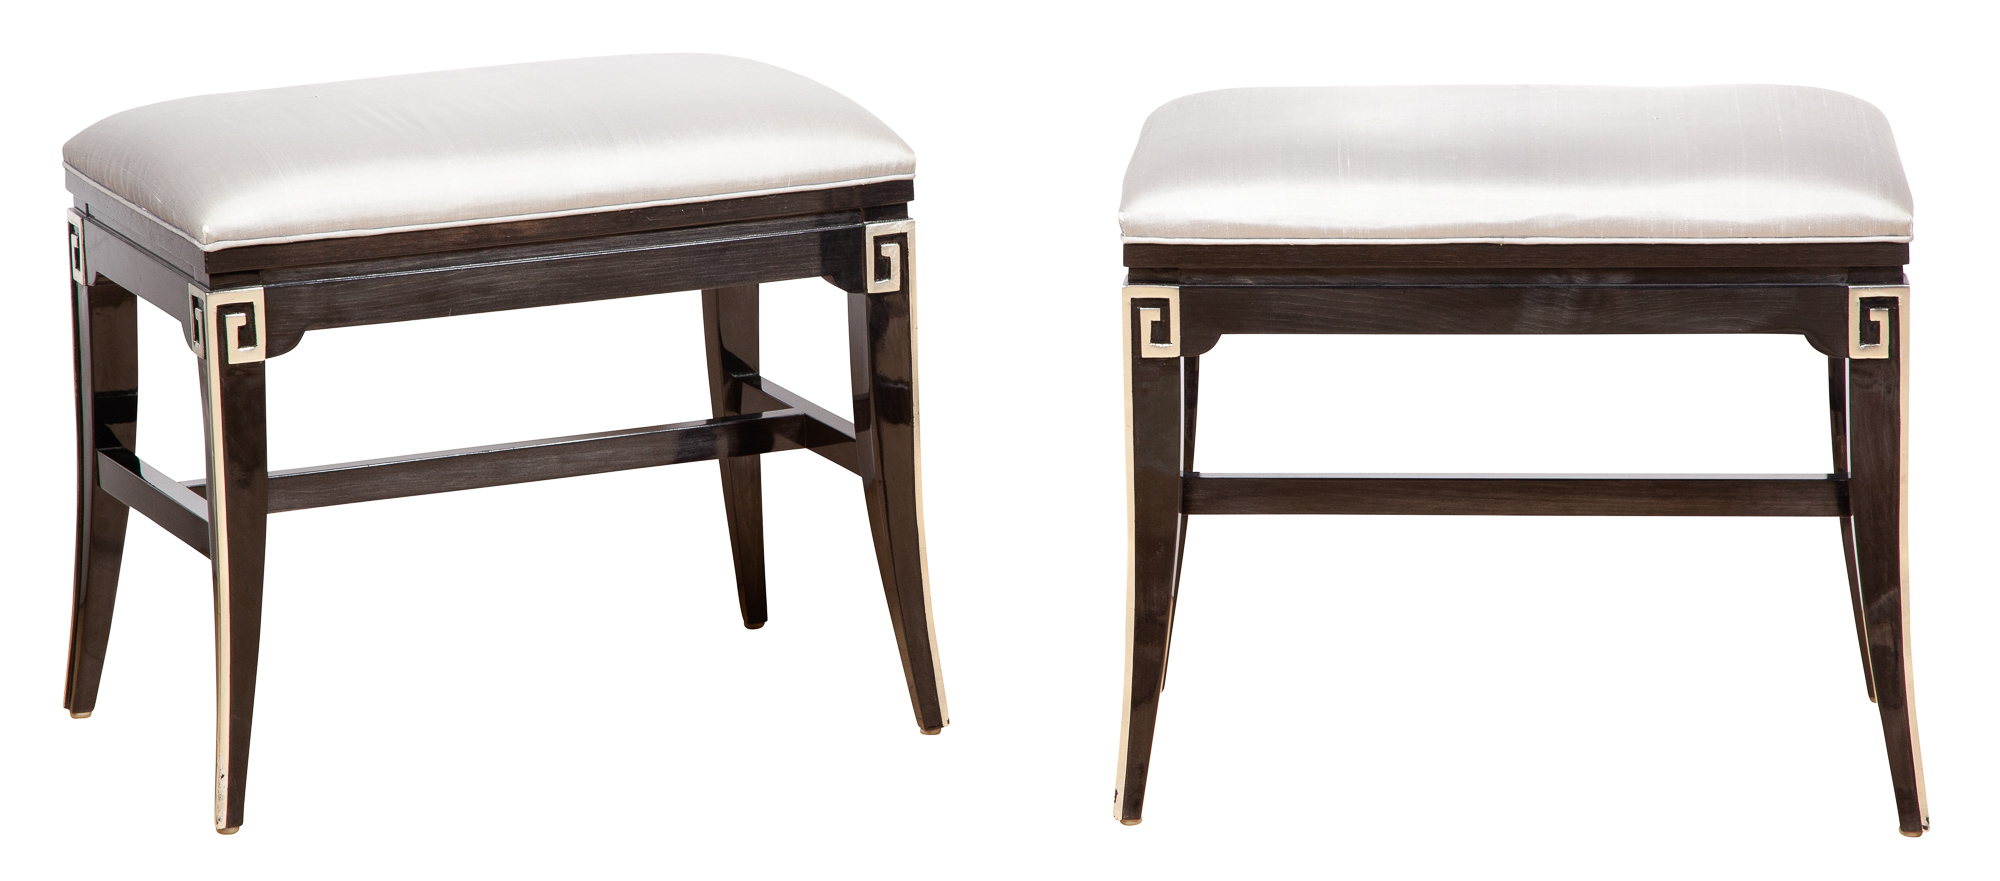 Lot image - Pair of Hollywood Regency Style Black and Silvered Lacquer Benches